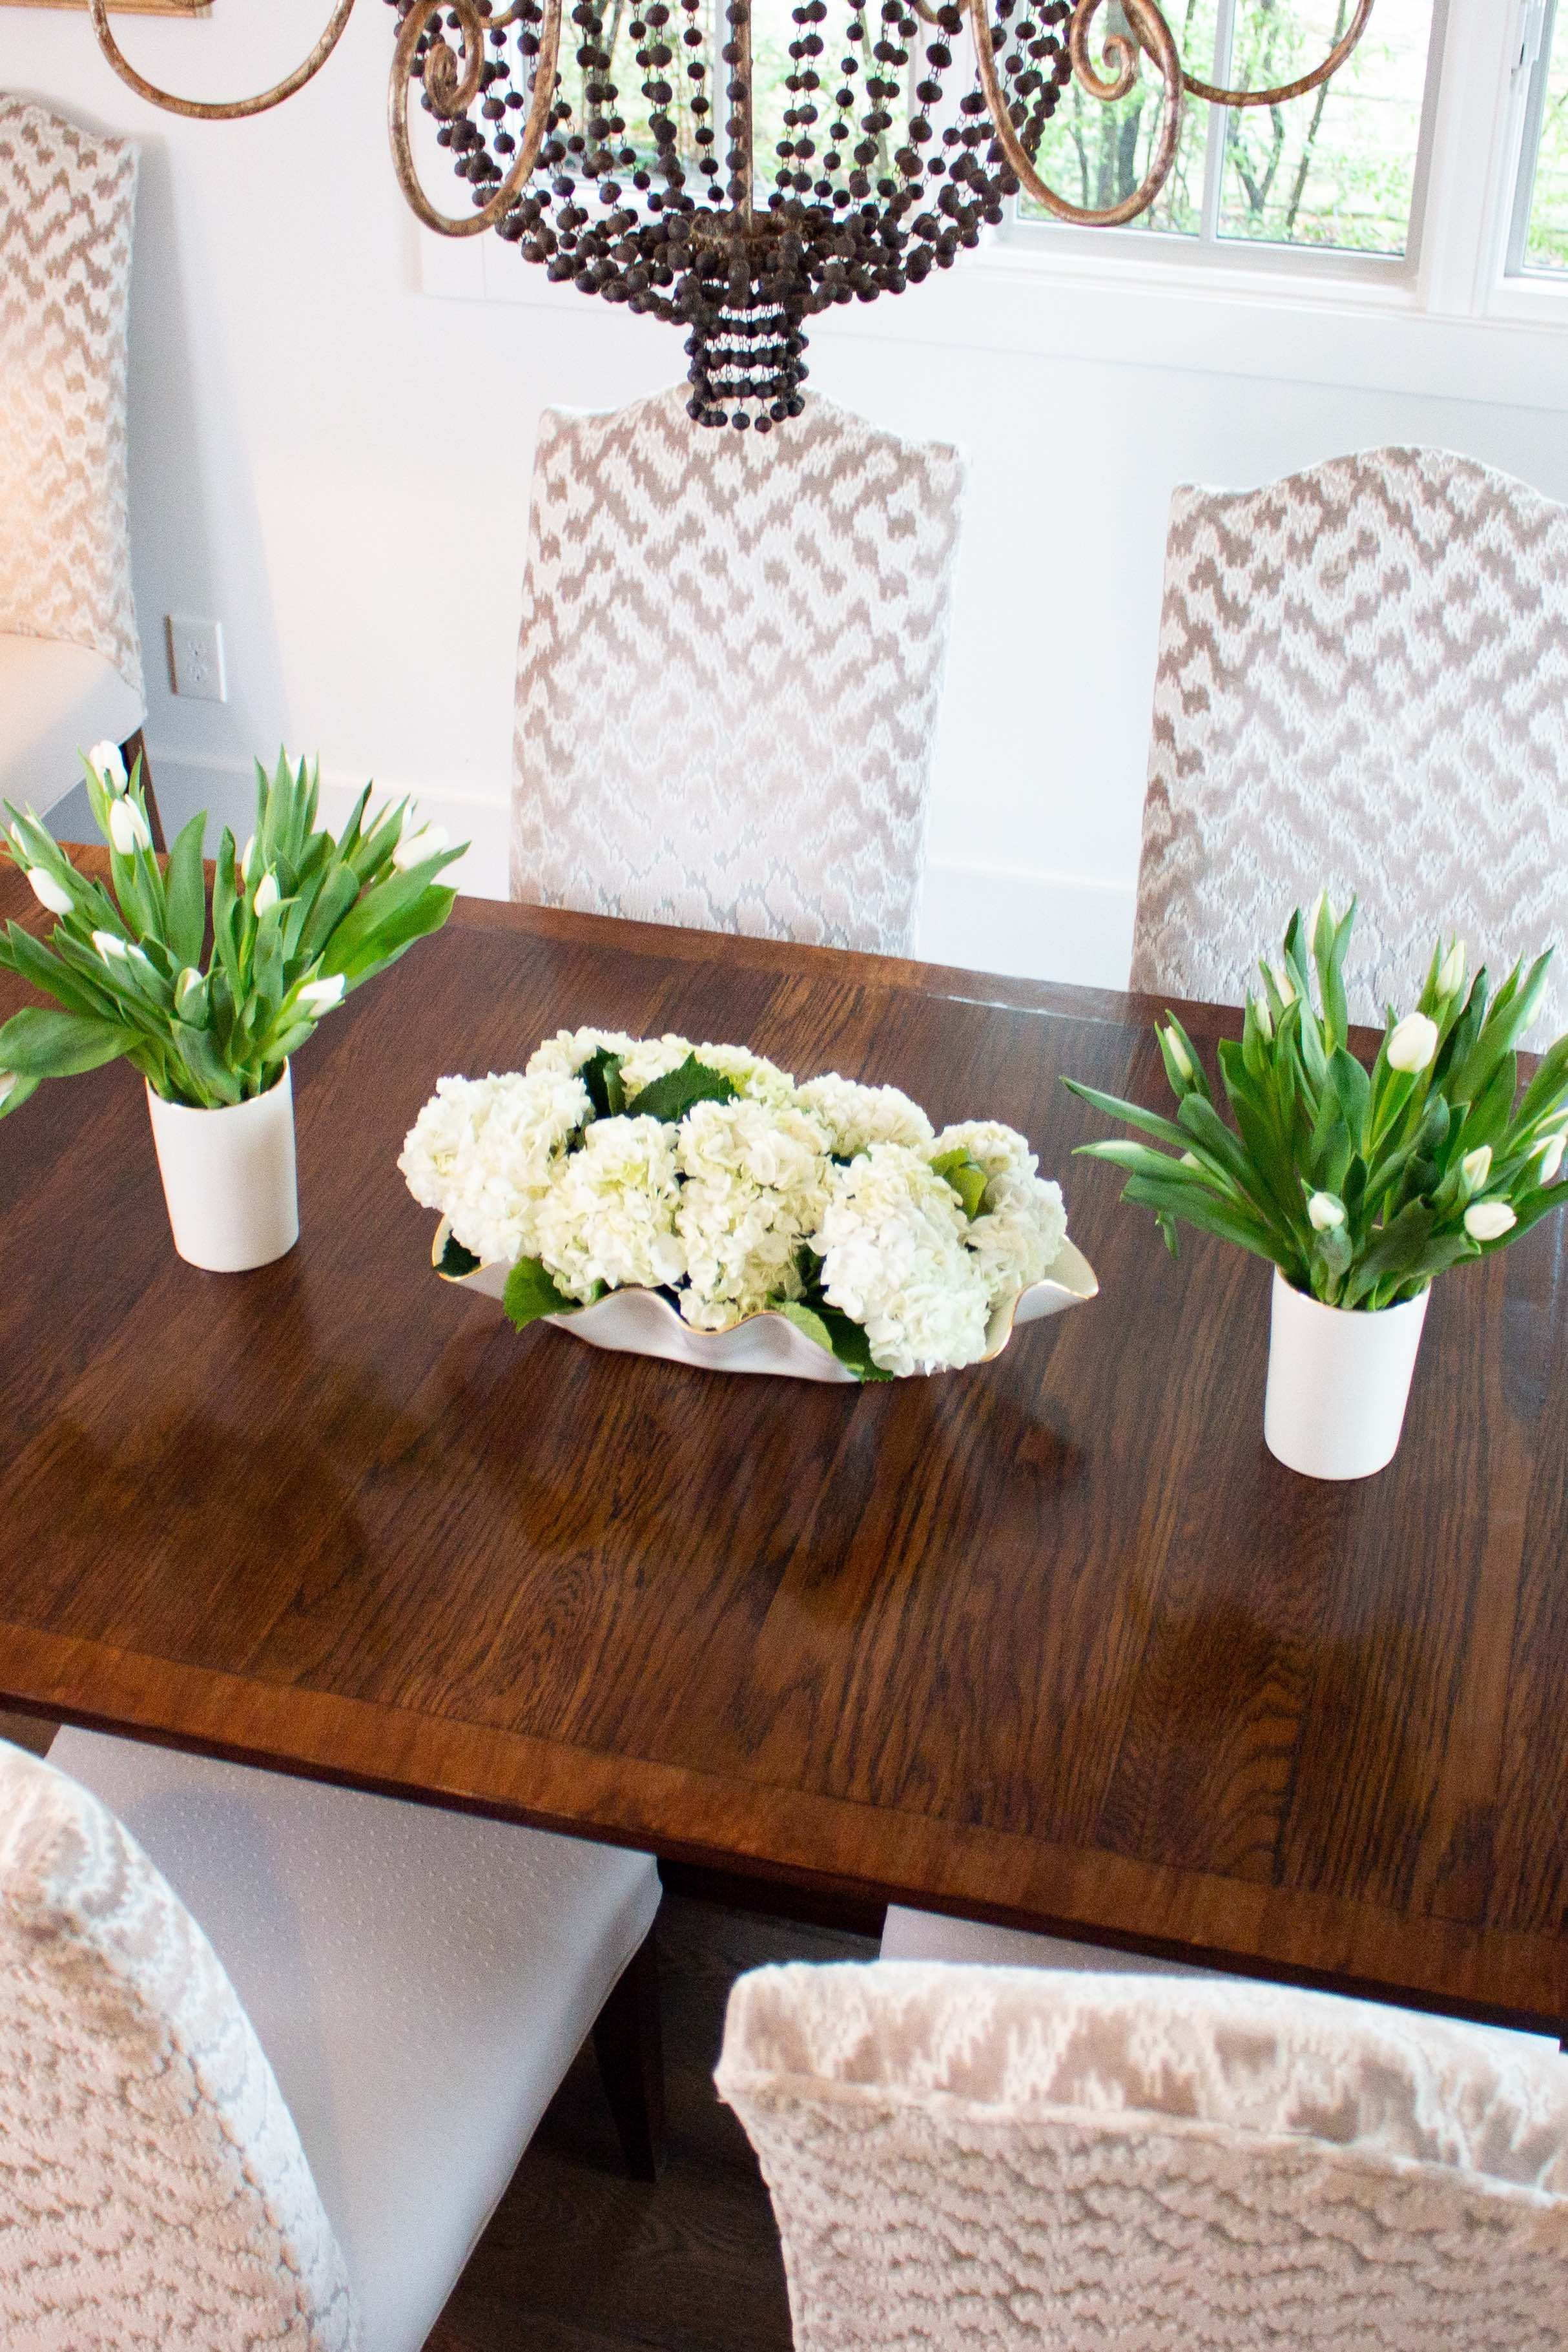 Styling A Dining Table Using Susan Gordon Pottery Susan Gordon Pottery Rectangle Table Centerpieces Dining Table Centerpiece Dining Table